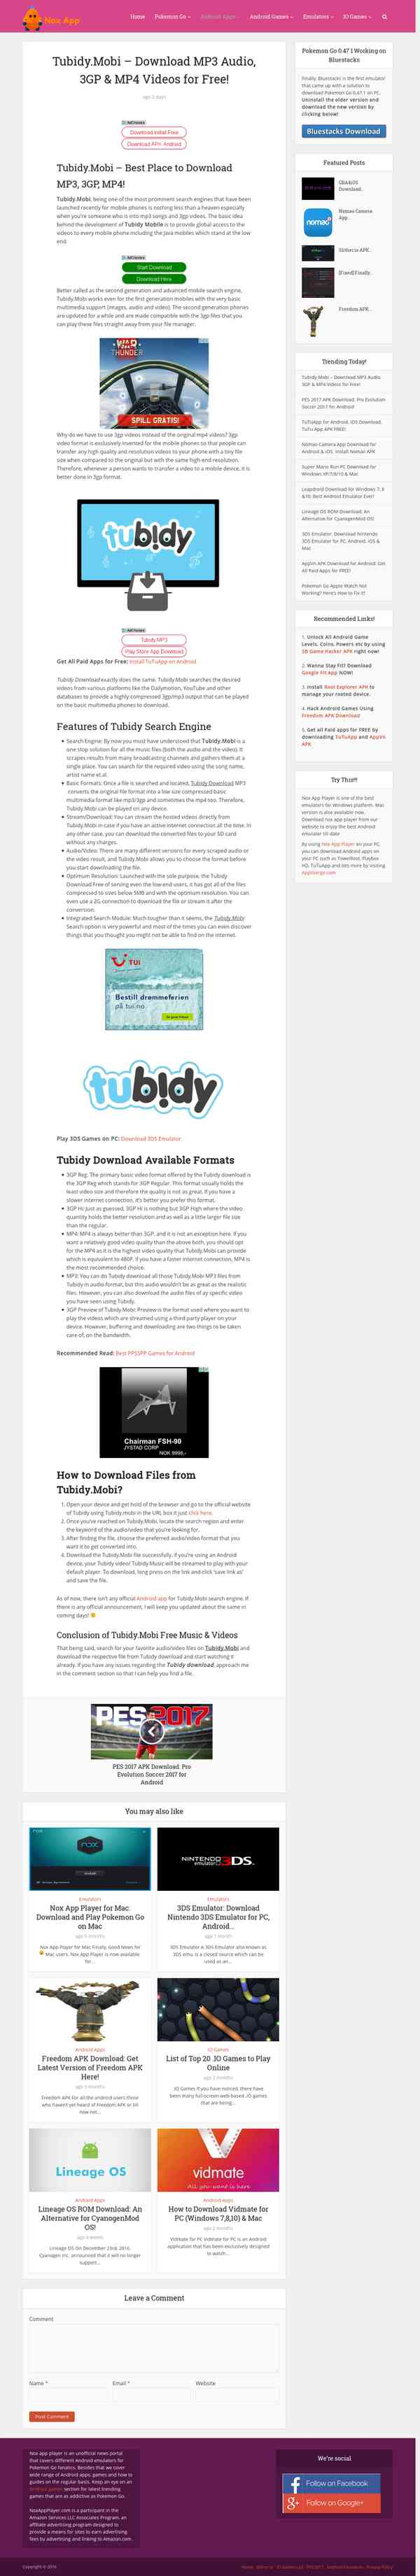 Tubidy Mobile - Nox app player